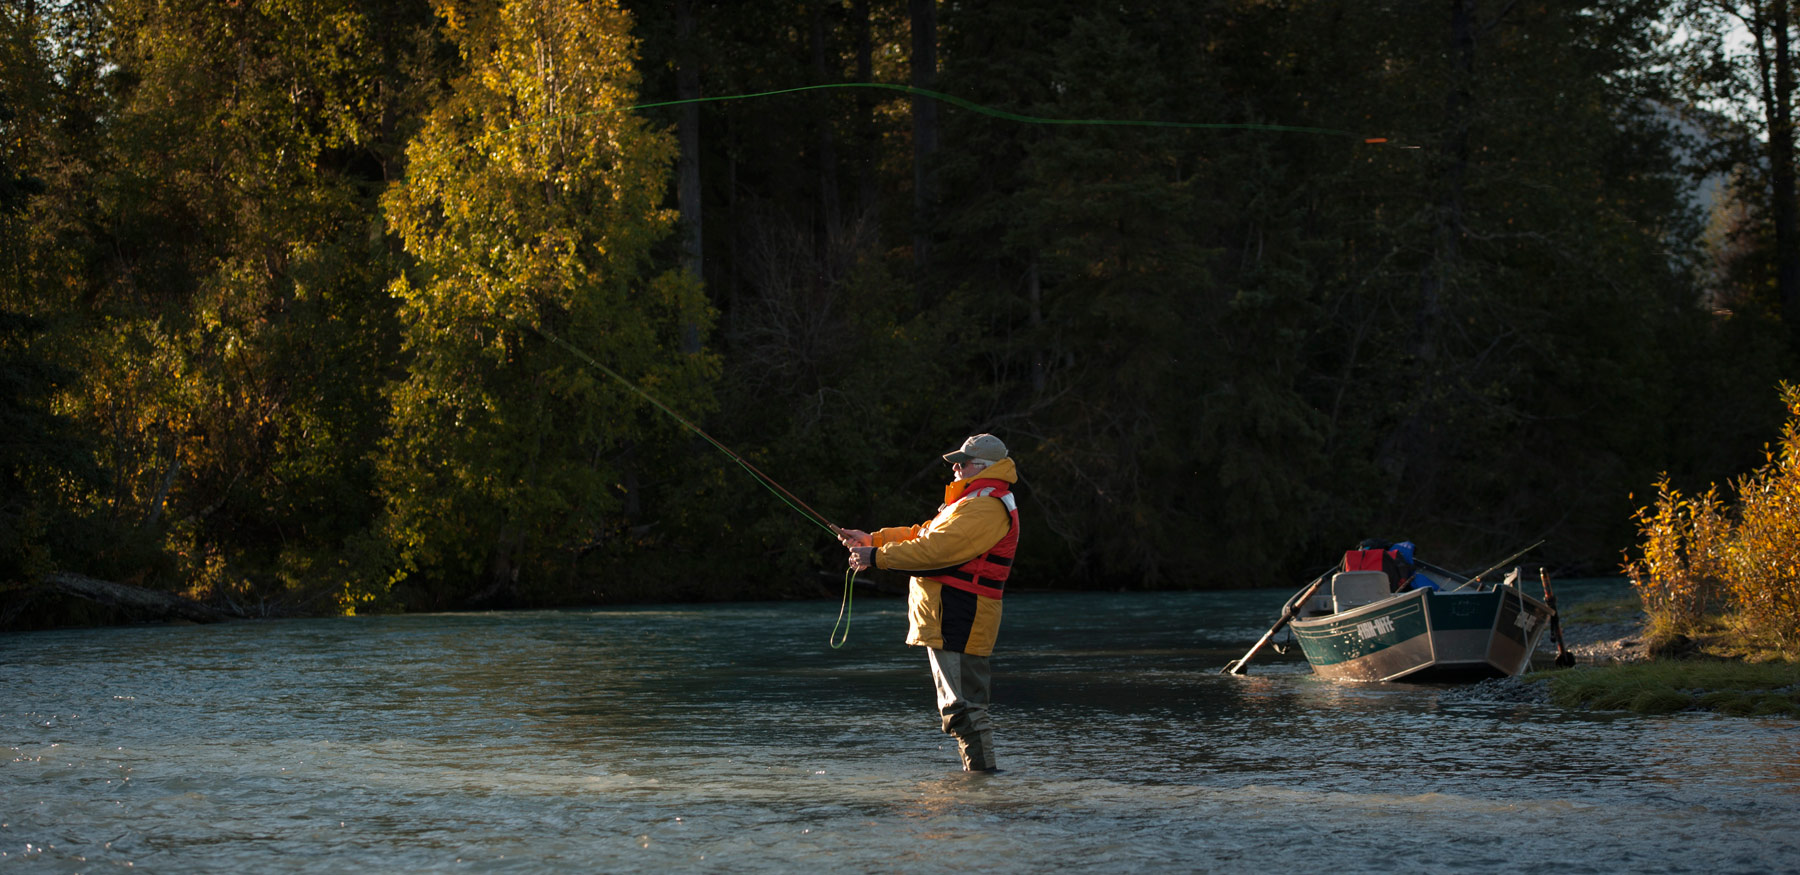 Russian River fly fishing.